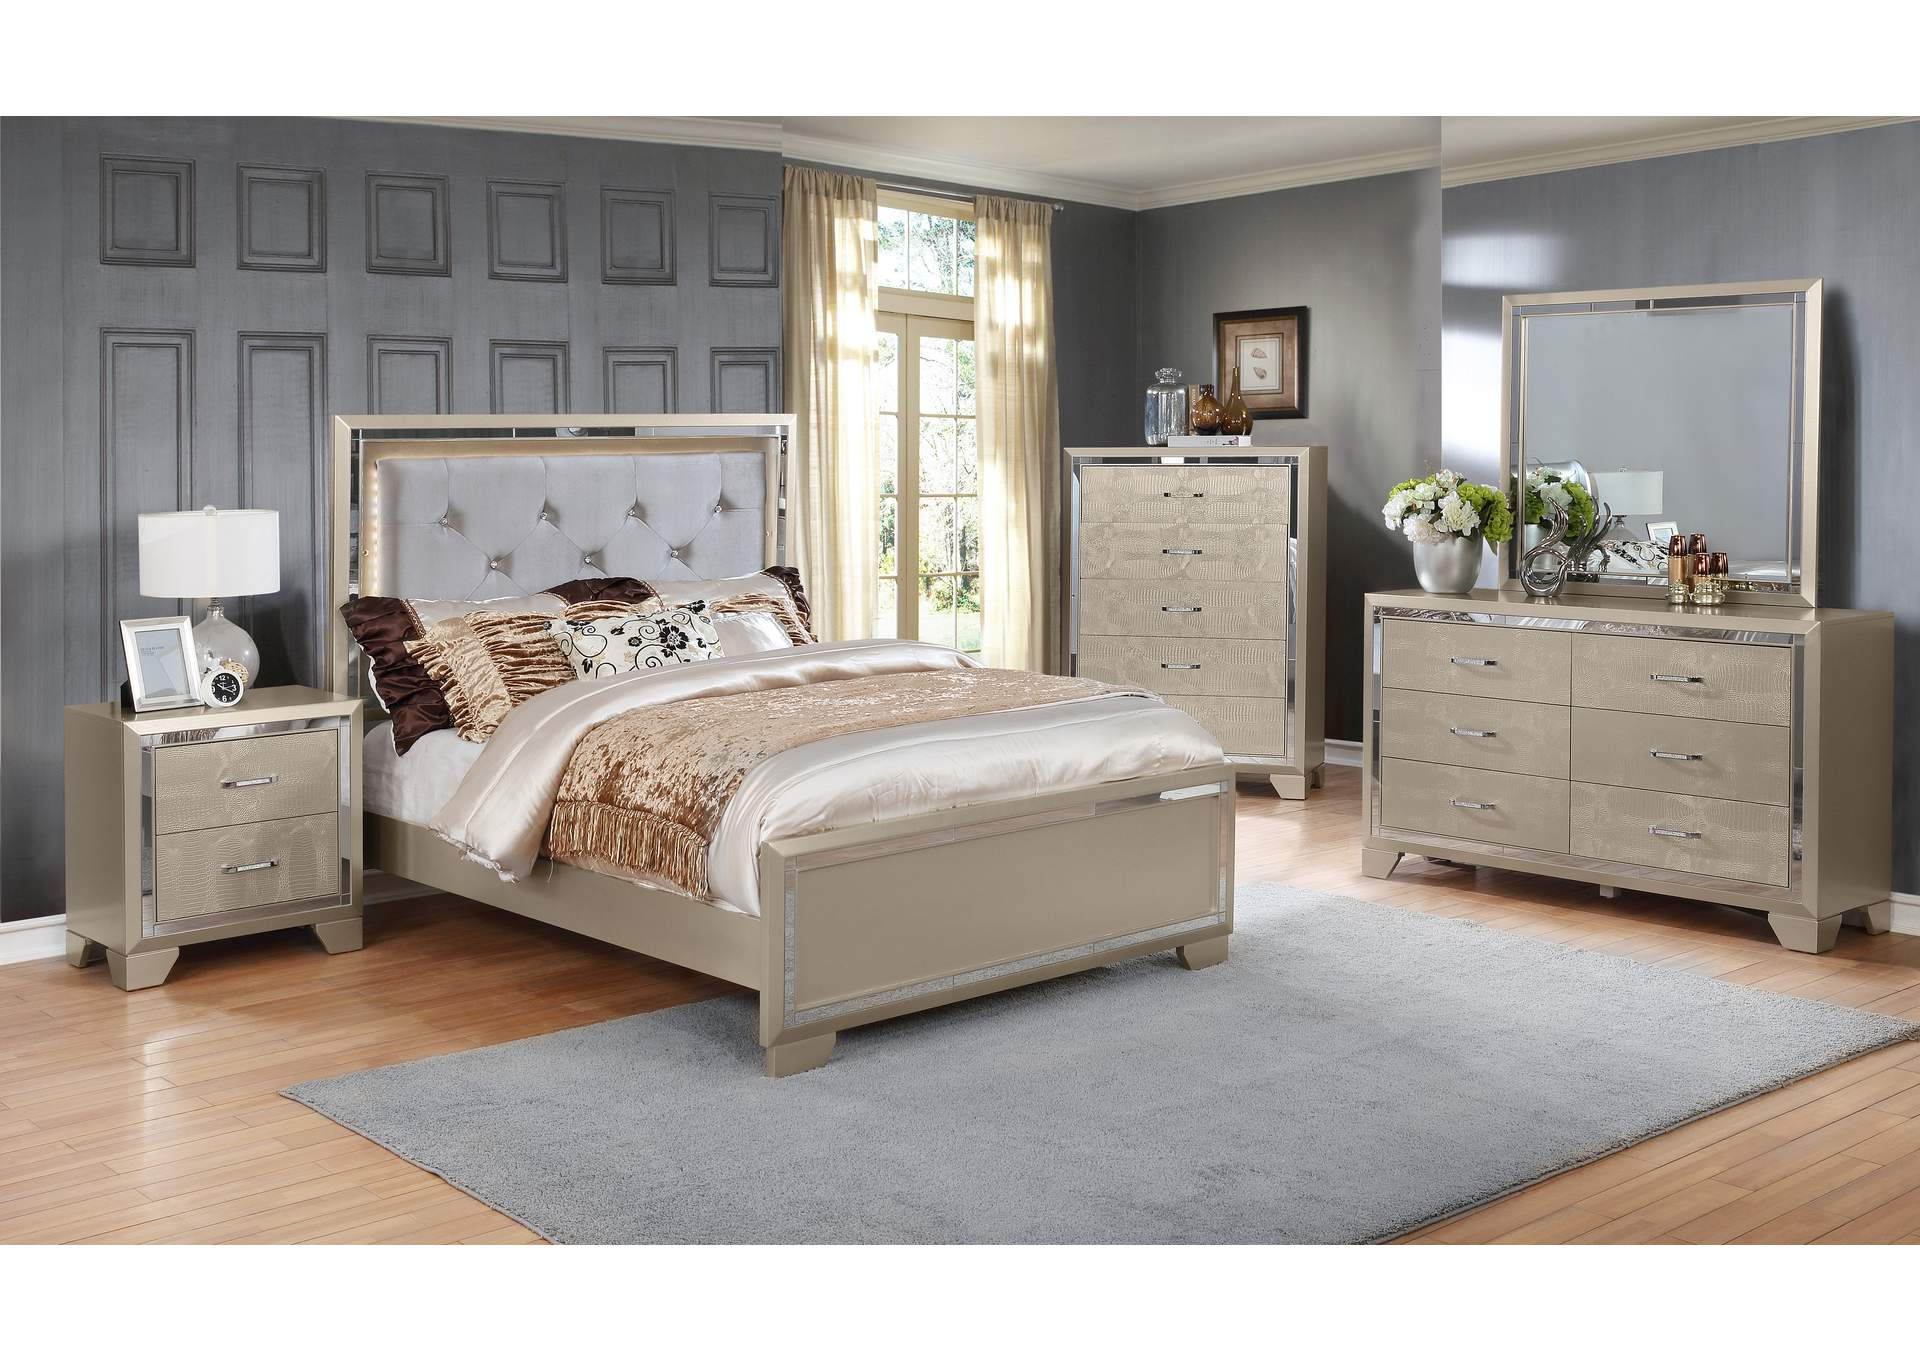 Rozzelli Pearl Panel Queen 5 Piece Bedroom Set W/ Nightstand, Chest, Dresser & Mirror,Global Trading